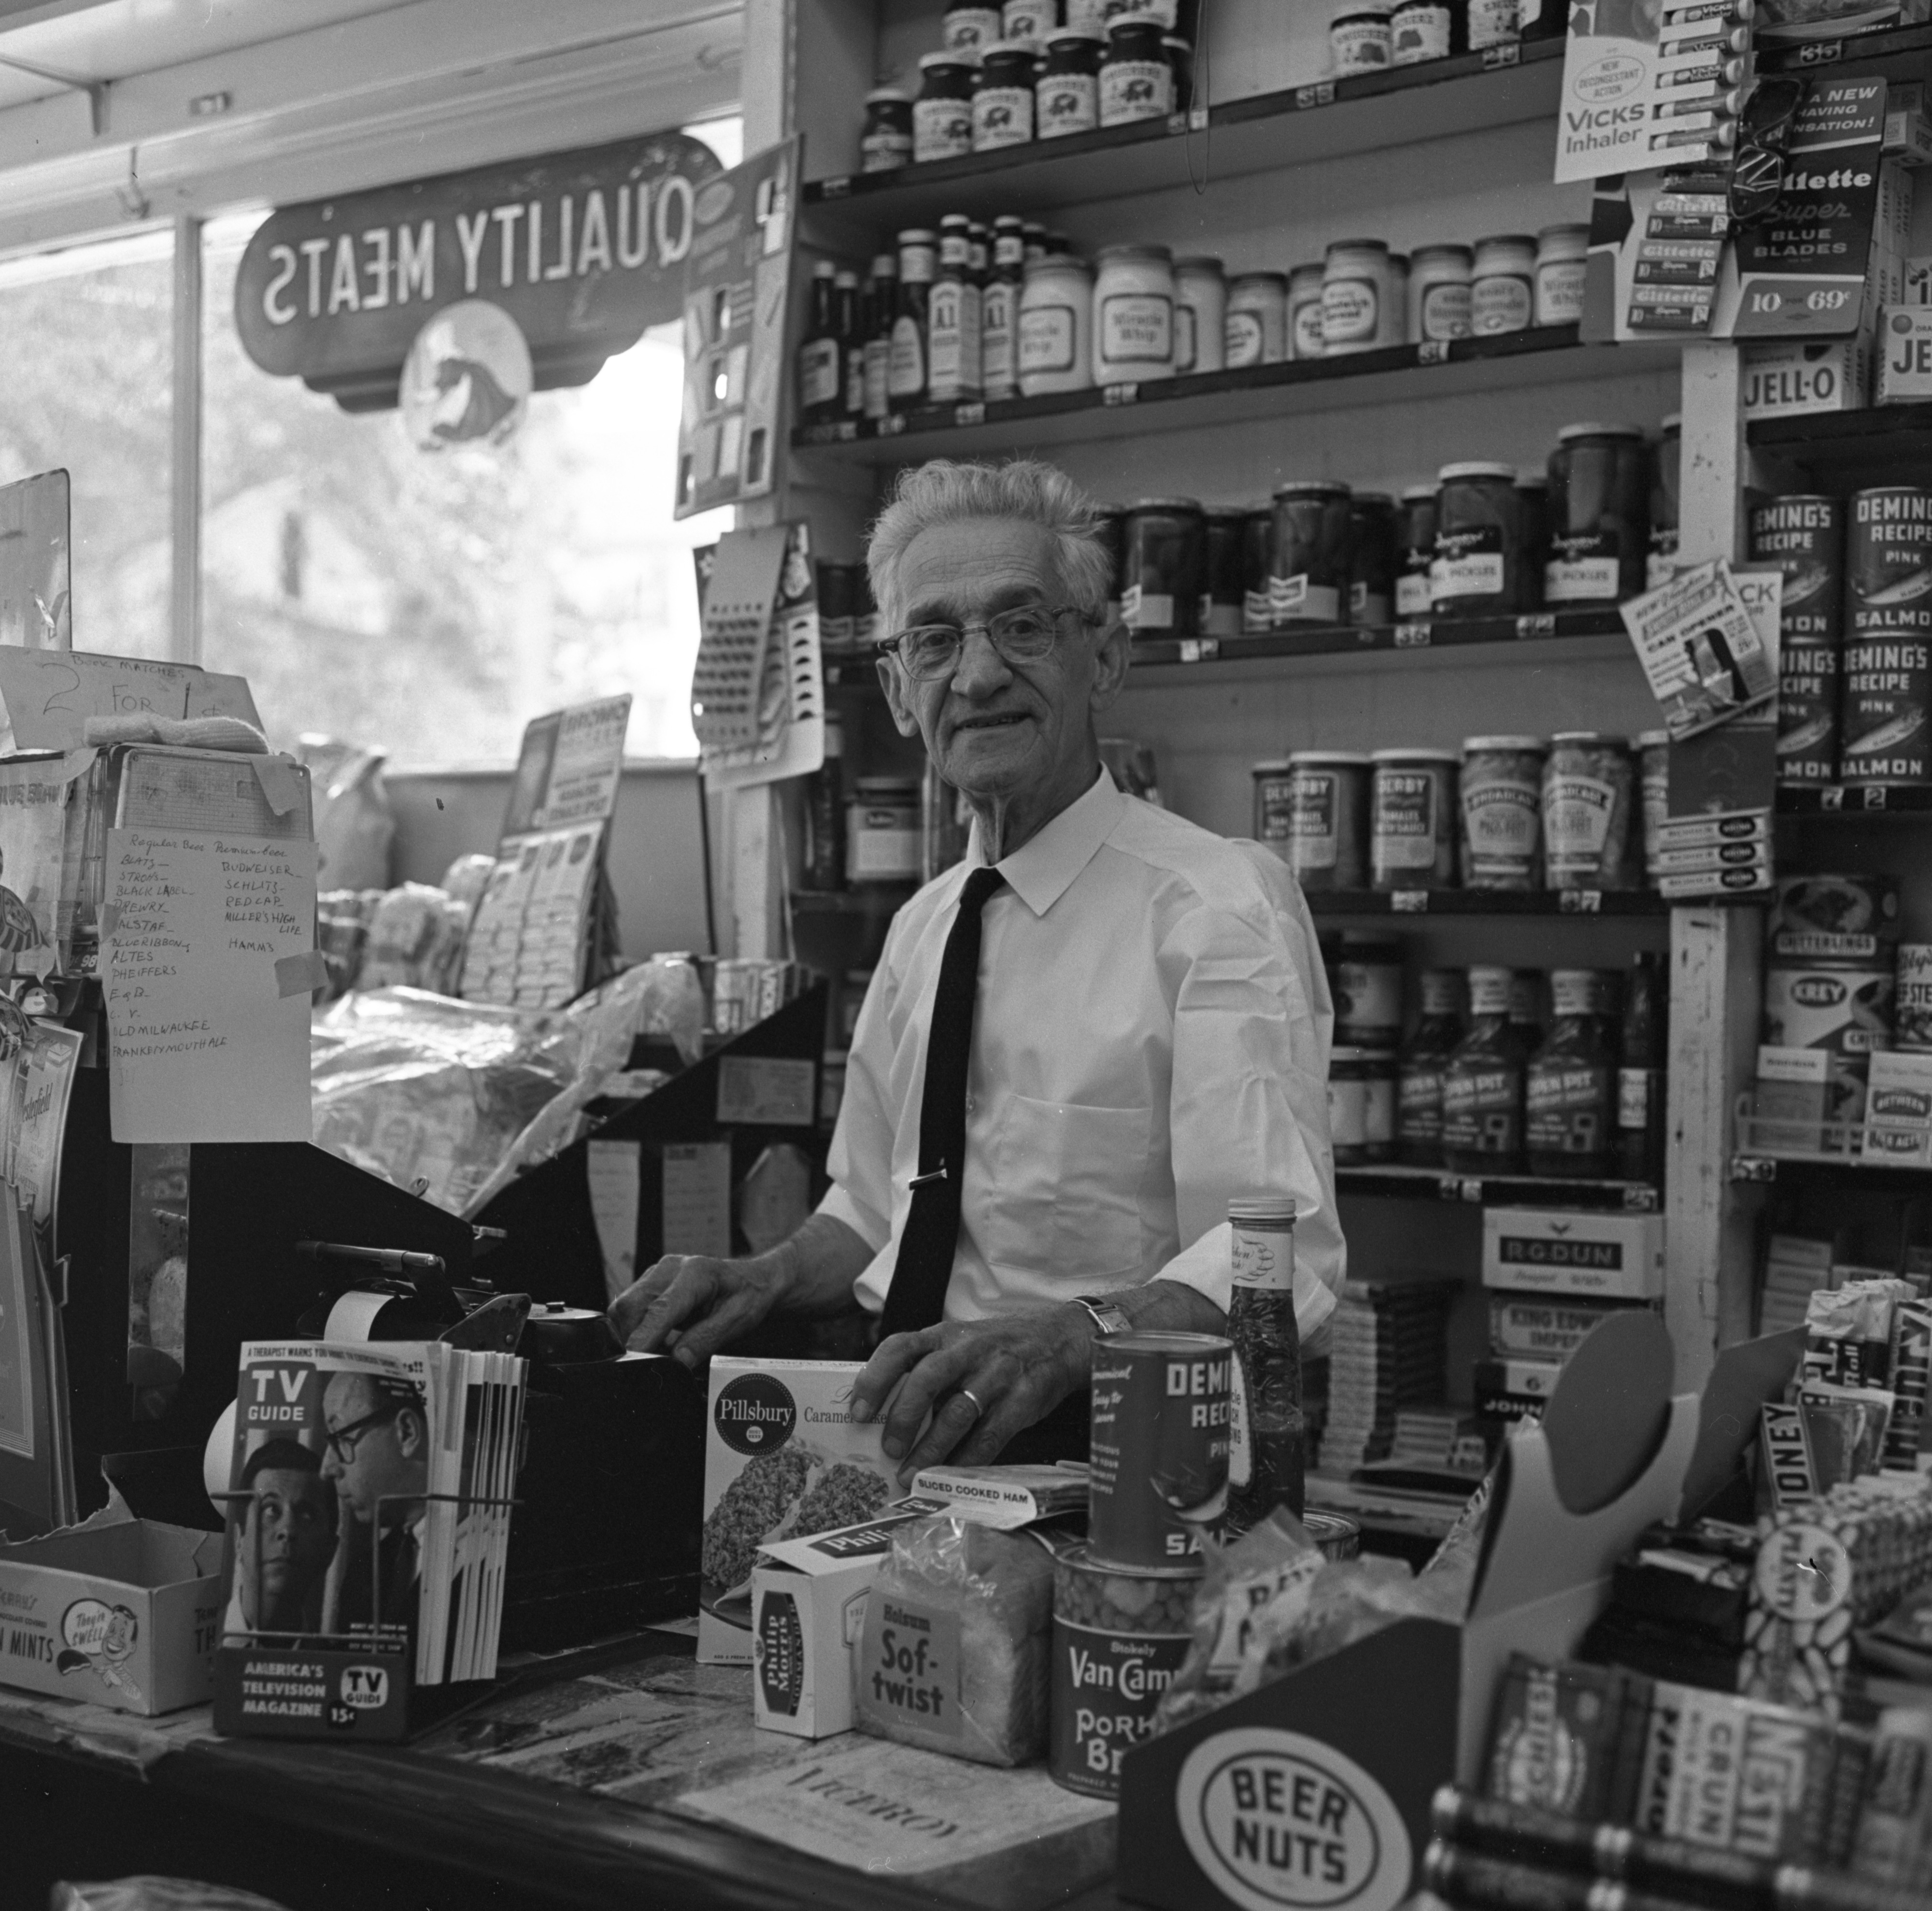 Thomas Kussurelis At His Business - Tom's Grocery Store, August 1963 image